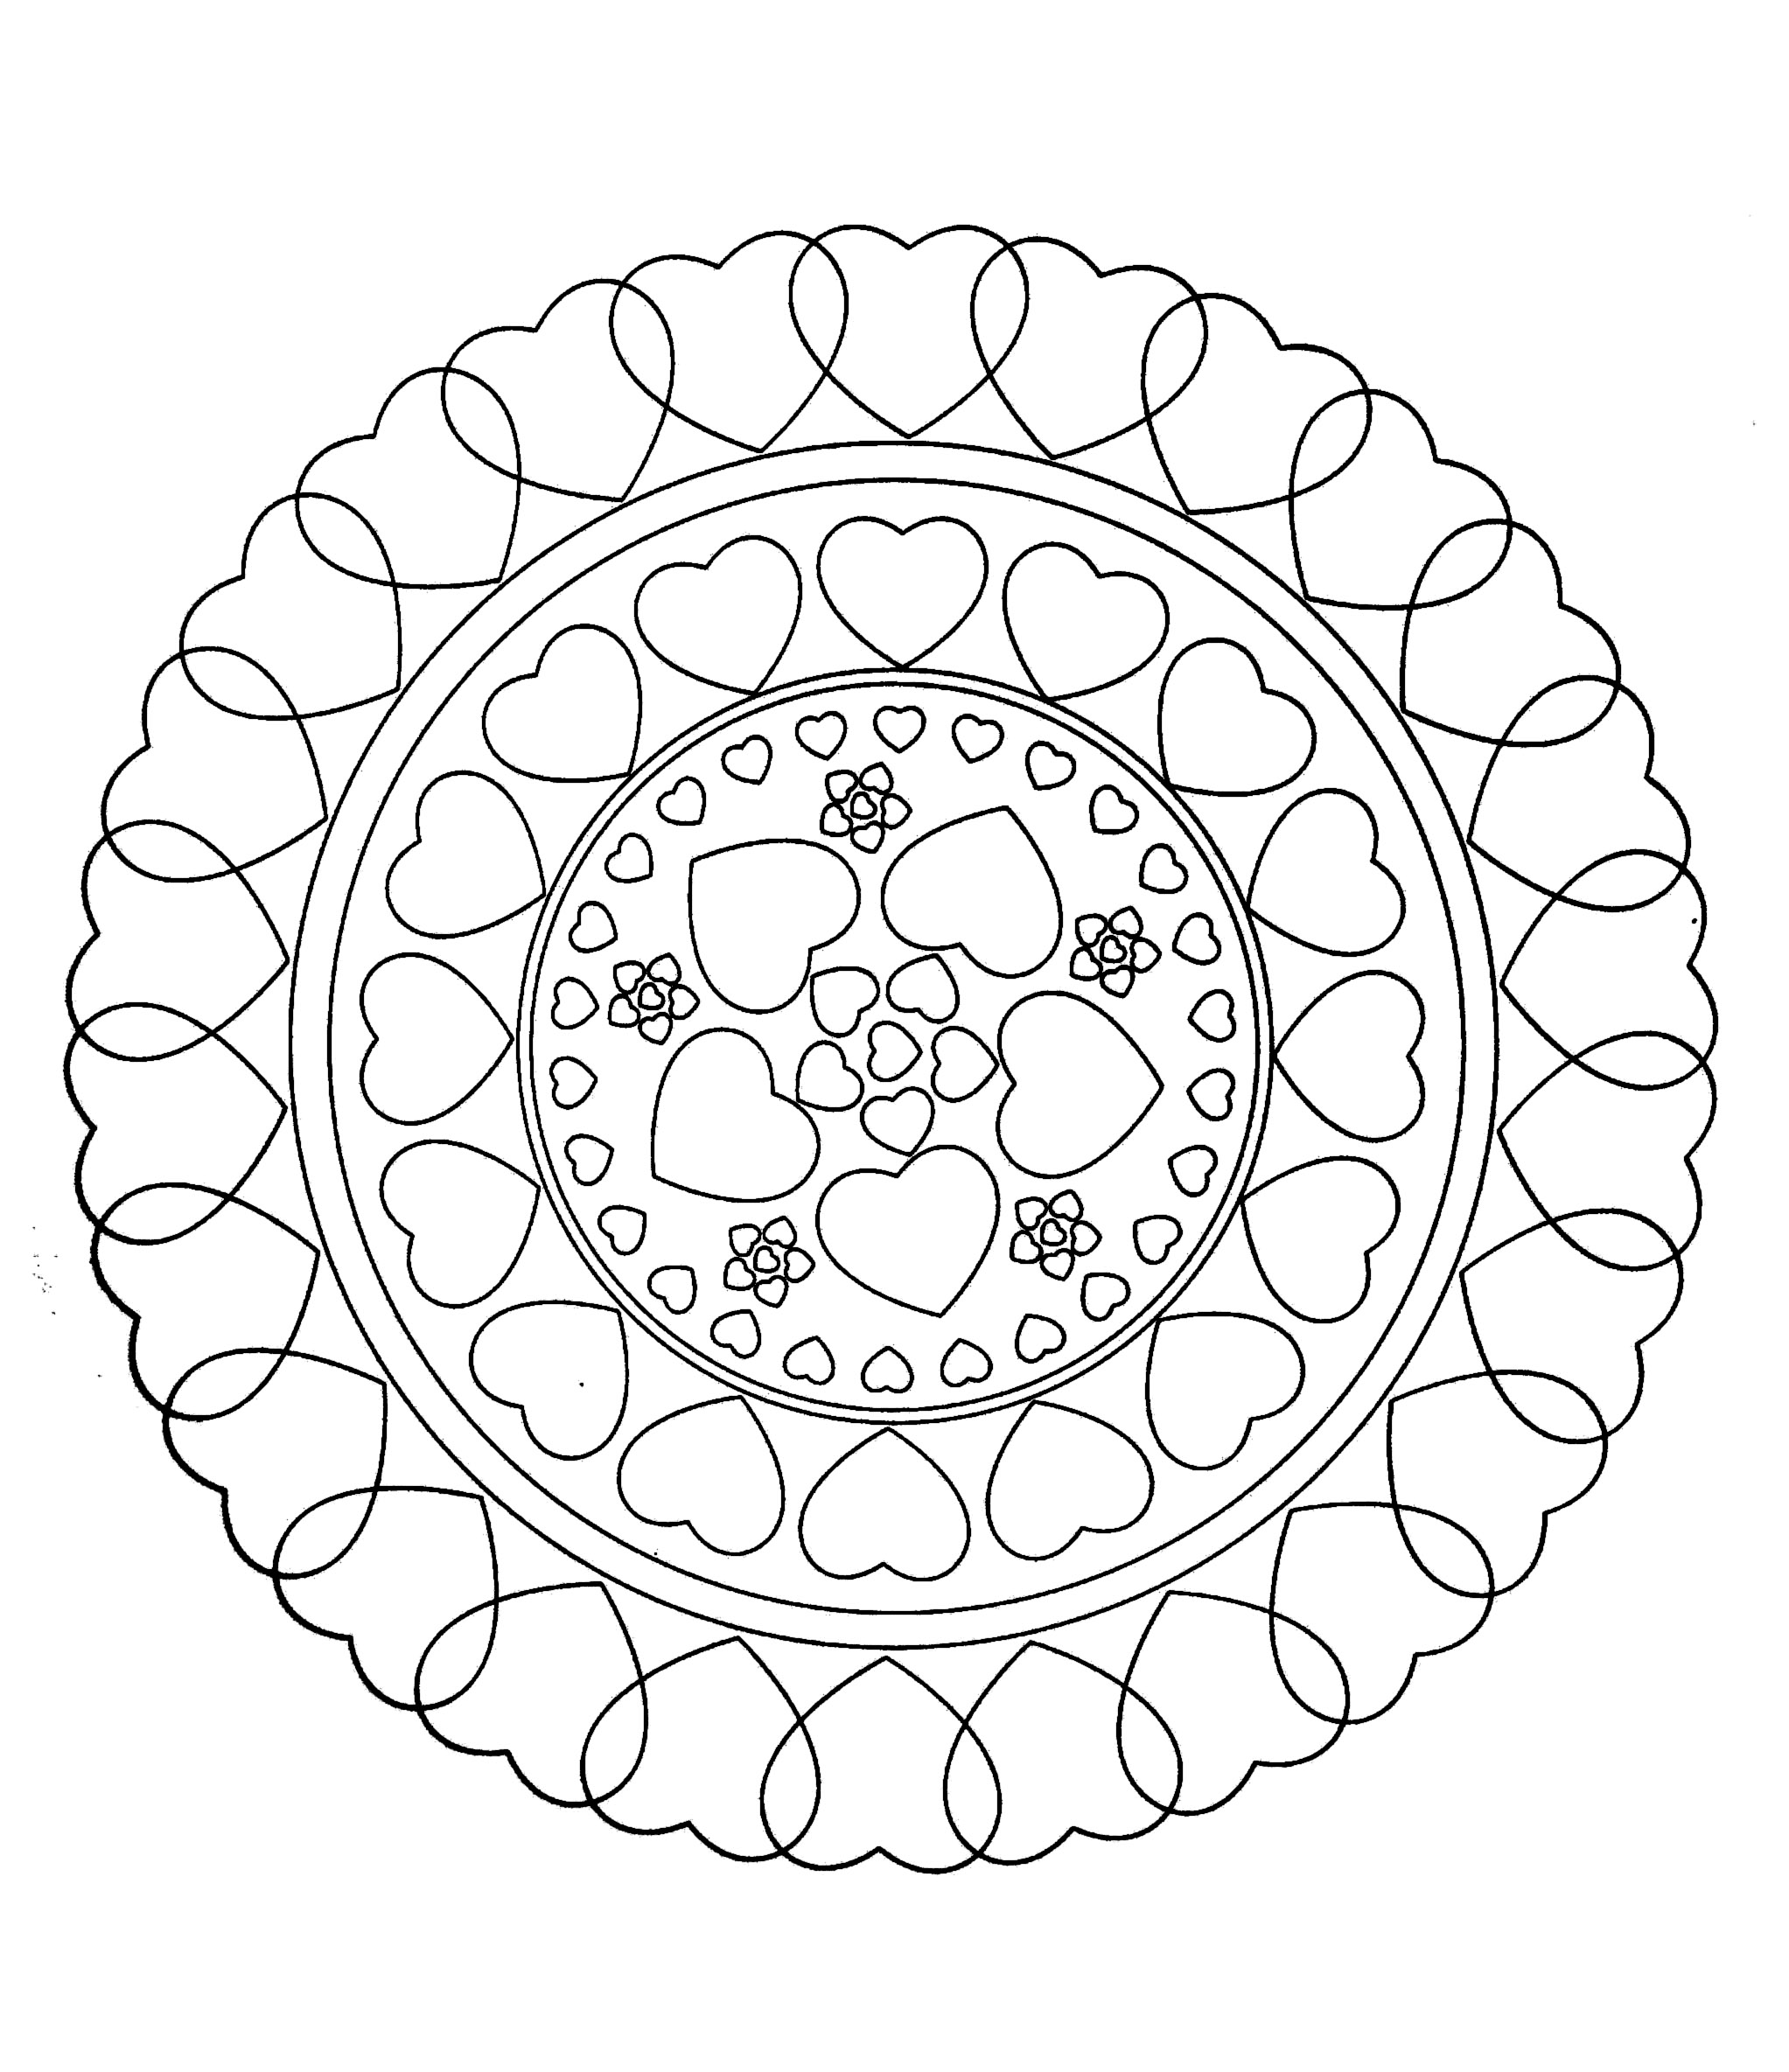 Free mandala to color : hearts love - M&alas Adult ...